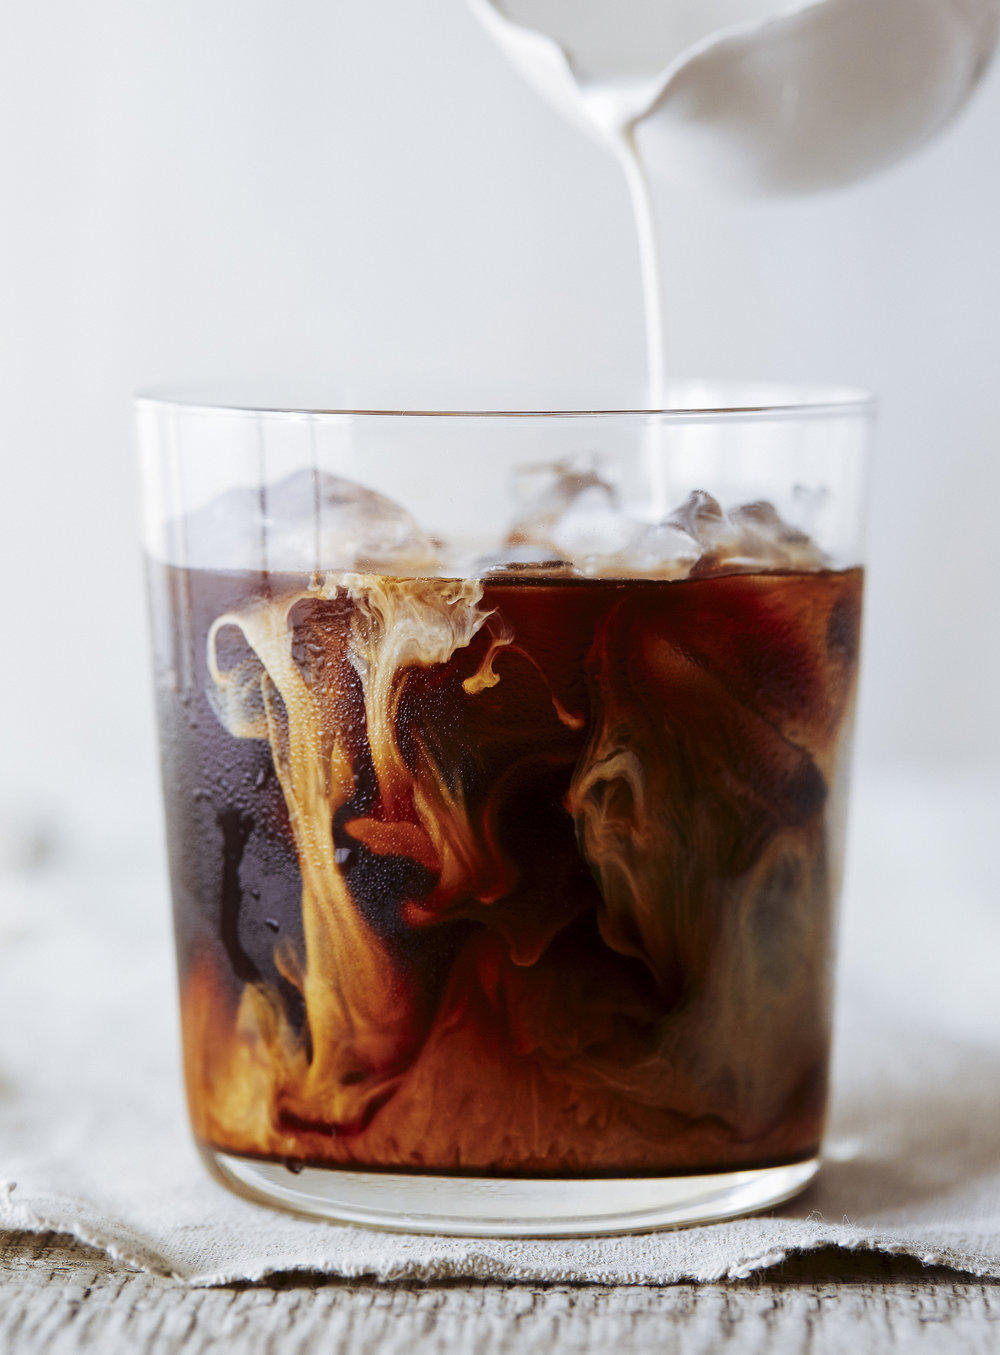 Burggraaf_Charity-SeattleFoodPhotographer-ColdBrew.jpg